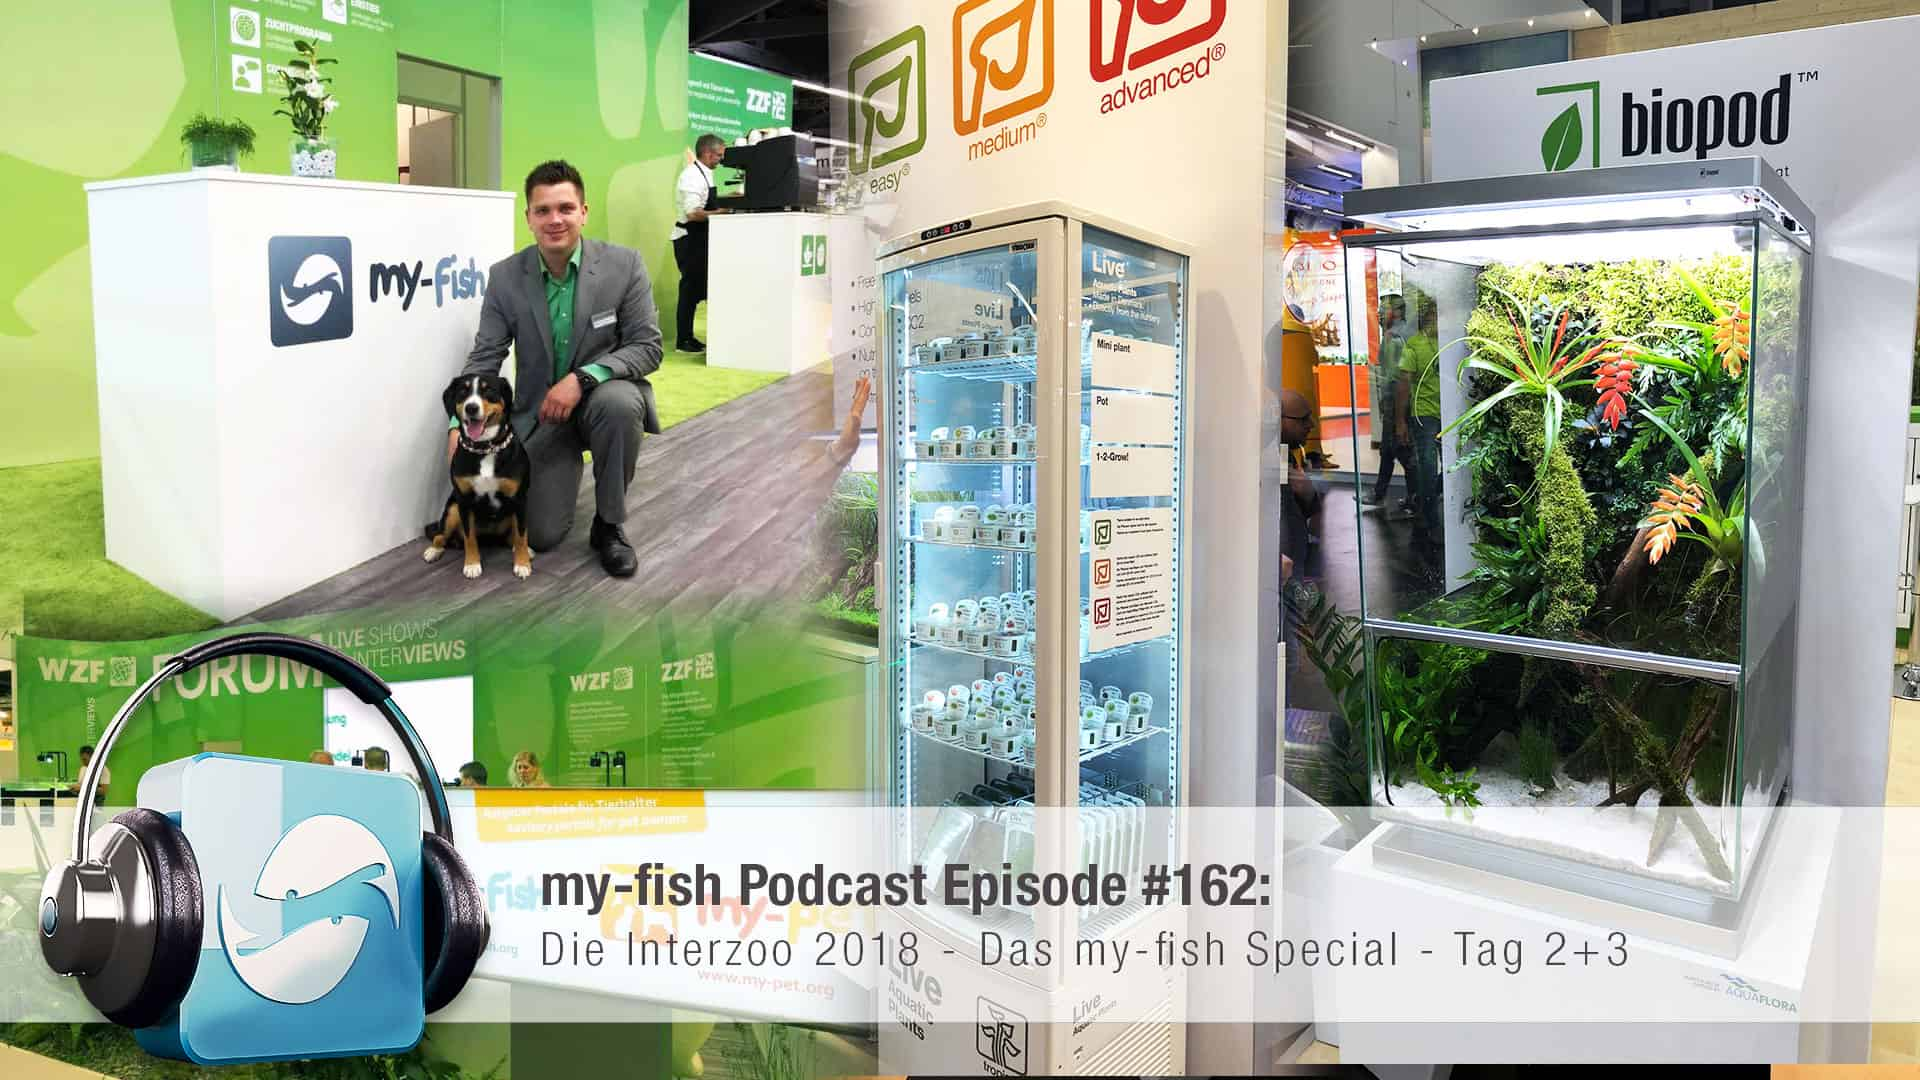 Podcast Episode #162: Die Interzoo 2018 - Das my-fish Special - Tag 2+3 1